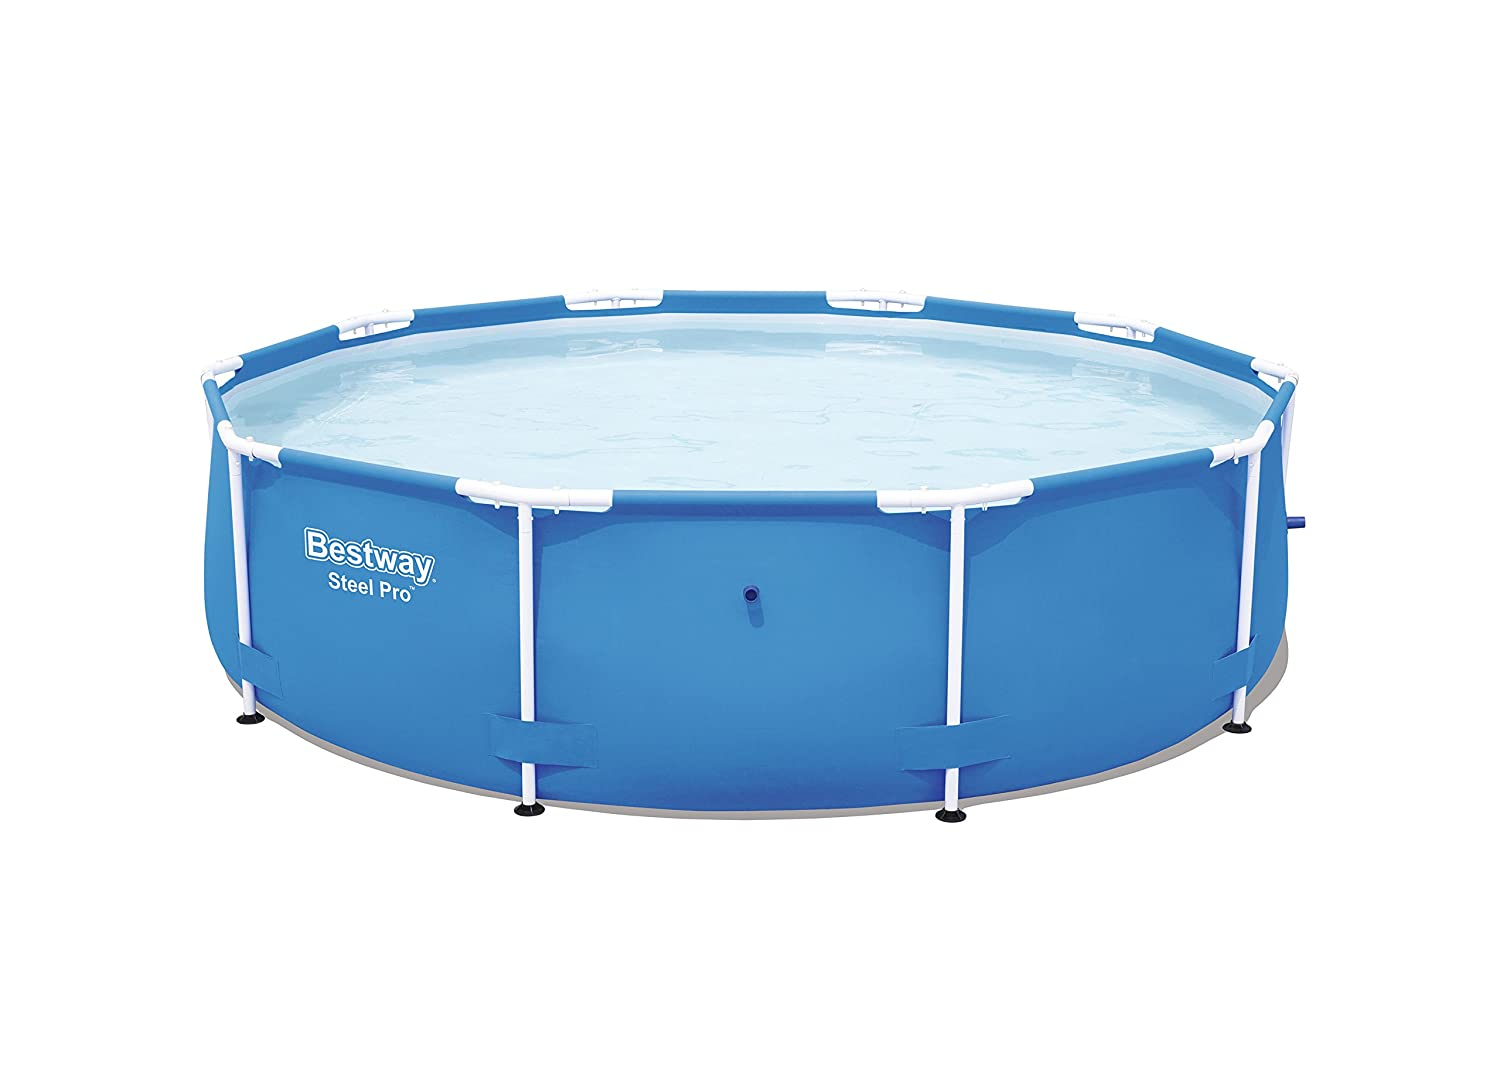 Bestway Steel Pro Swimming Pool, 4678 liters, Blue, 10 ft x 30-Inch 56677